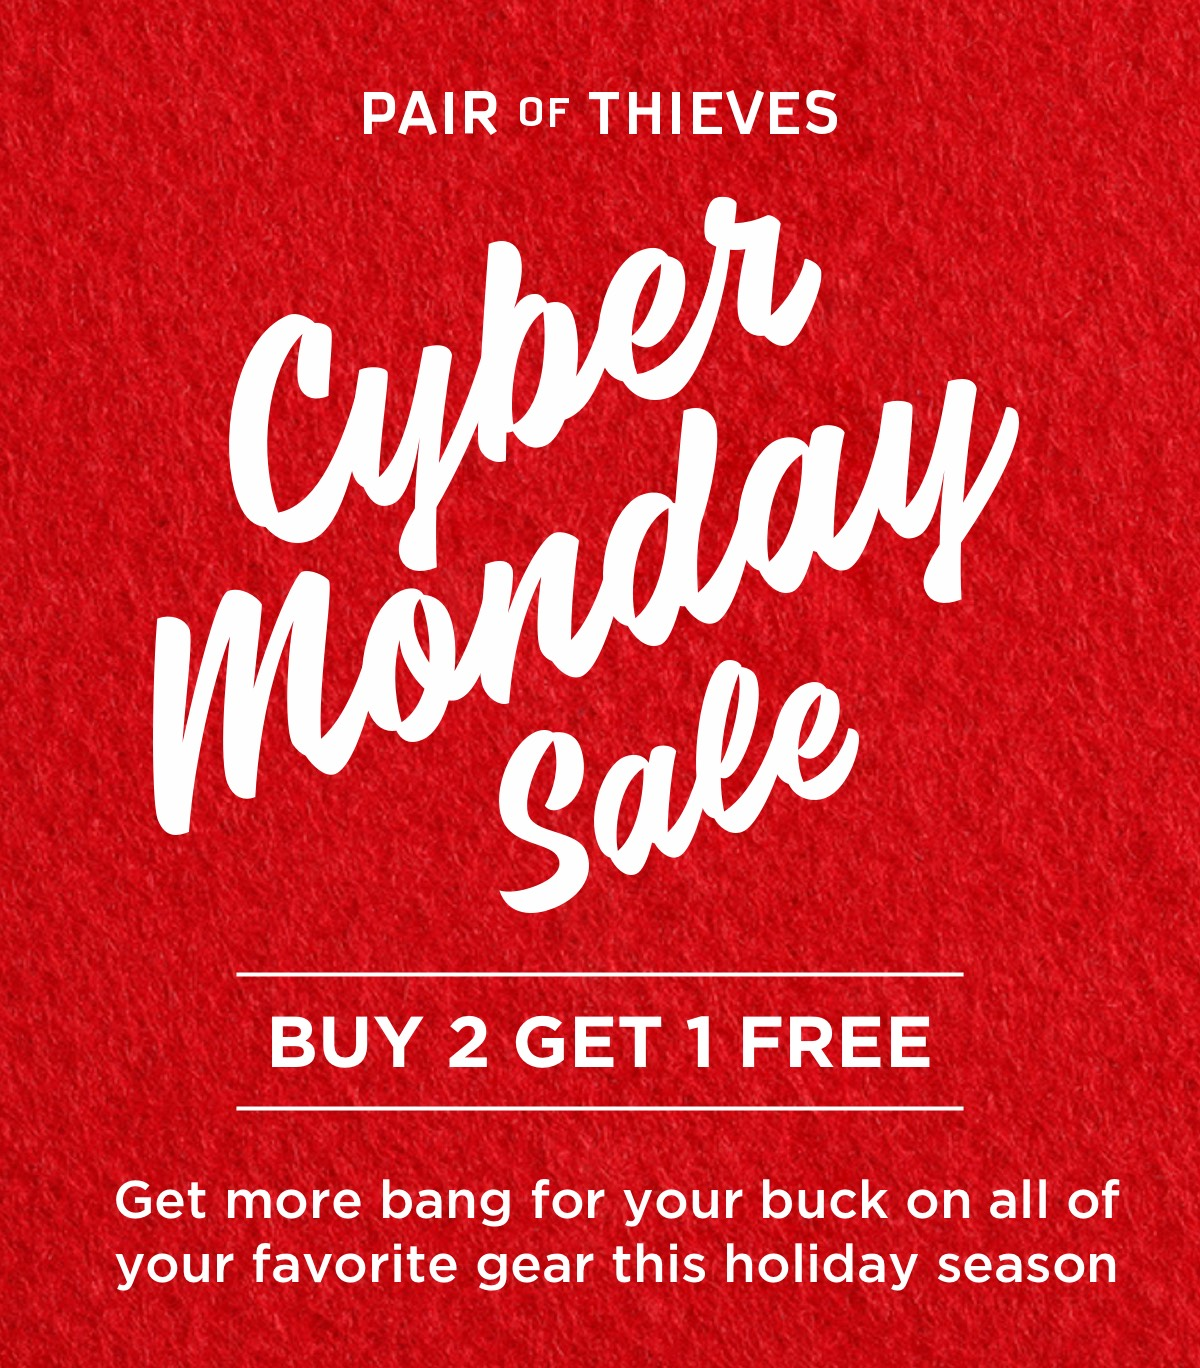 Pair of Thieves Cyber Monday Sale